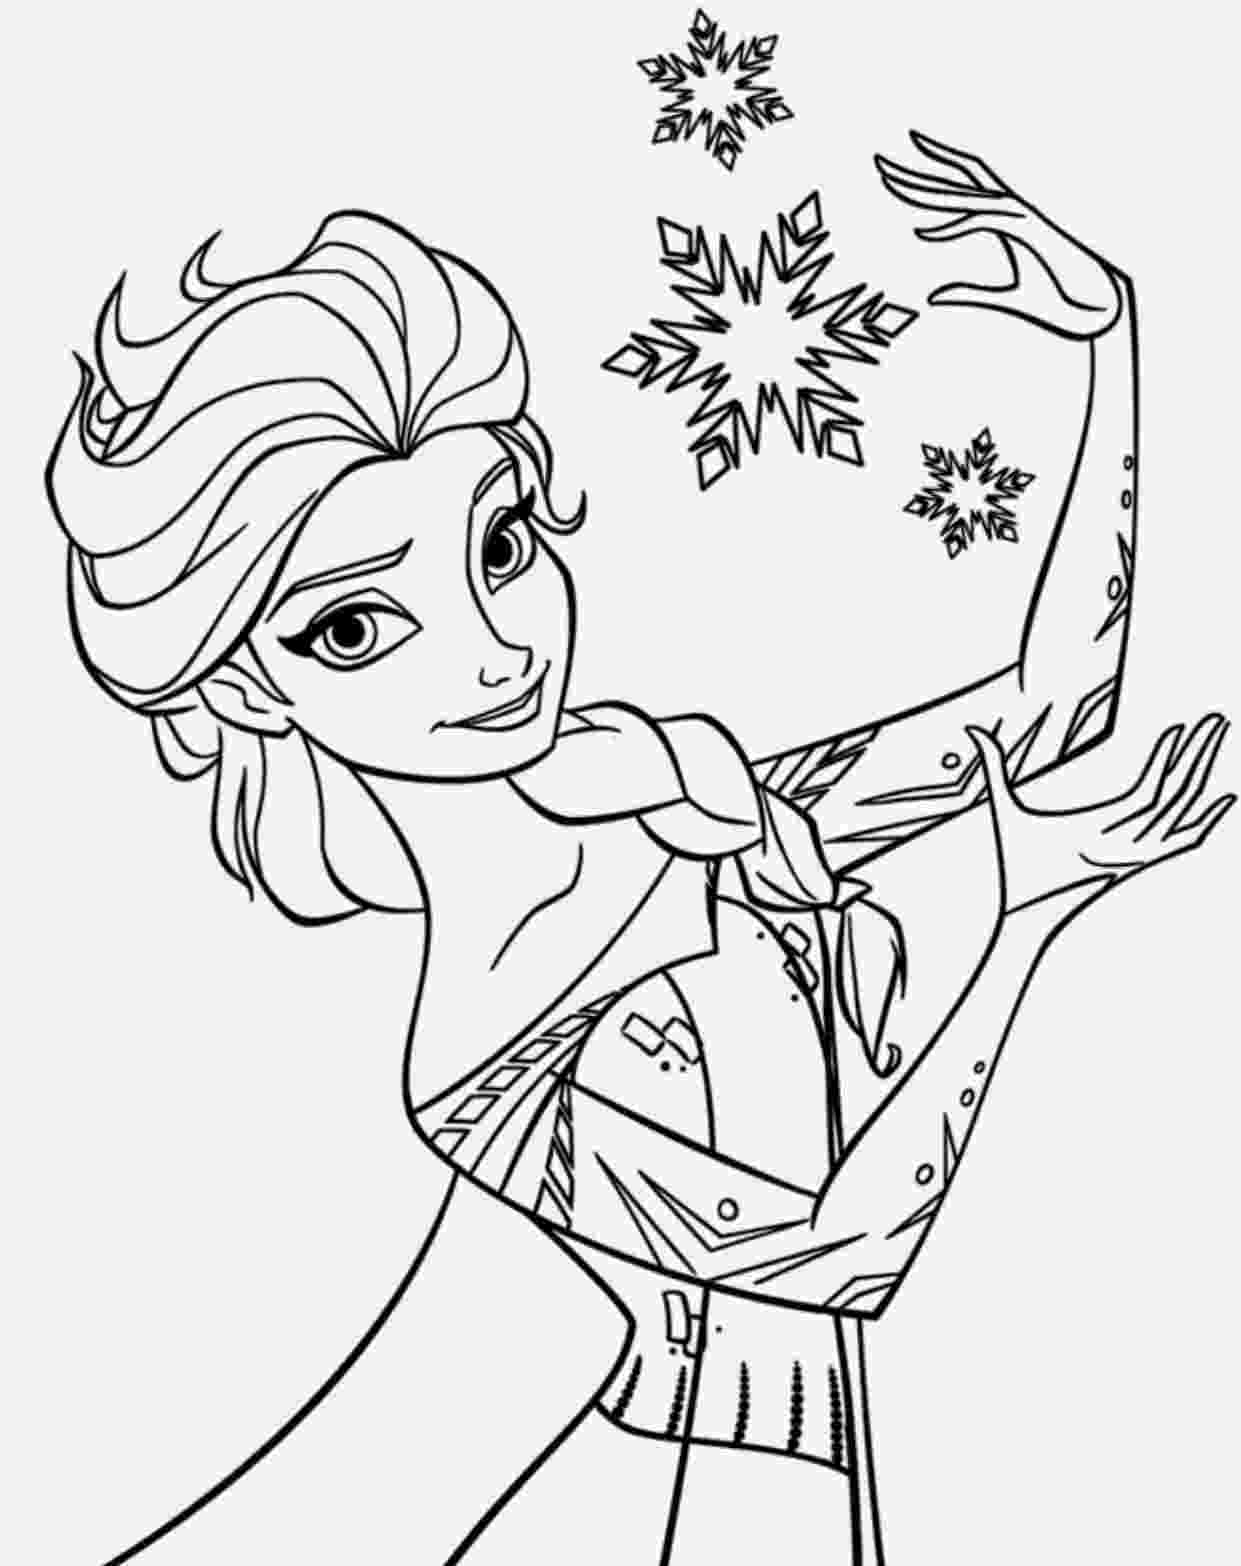 frozen printables coloring pages 15 beautiful disney frozen coloring pages free instant coloring printables pages frozen